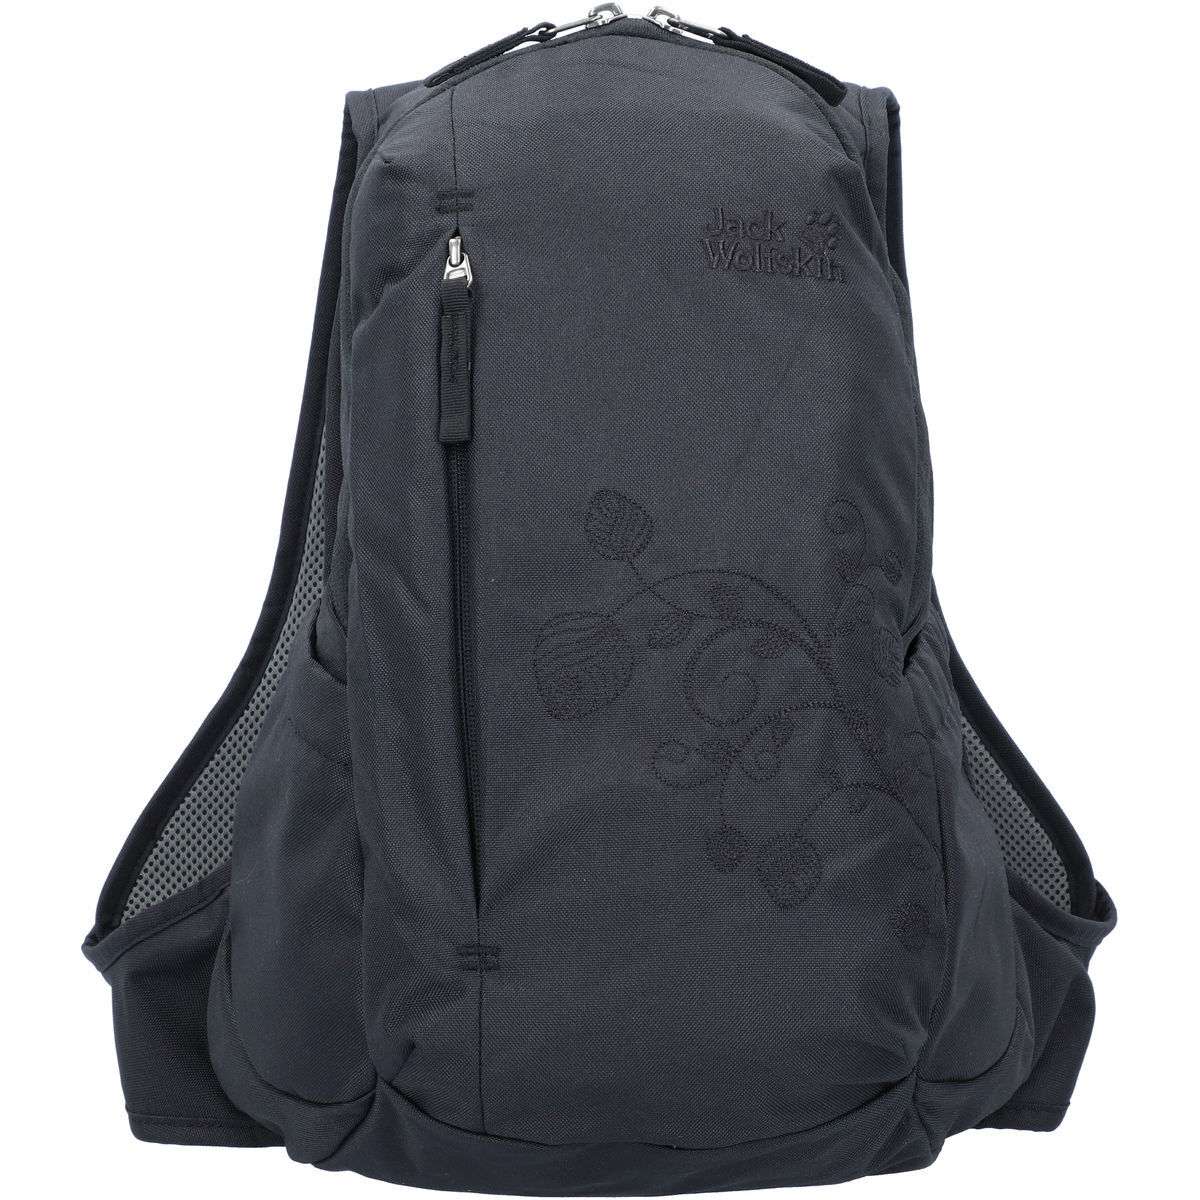 super popular 1e89b d55b6 Ancona Rucksack 40cm, black